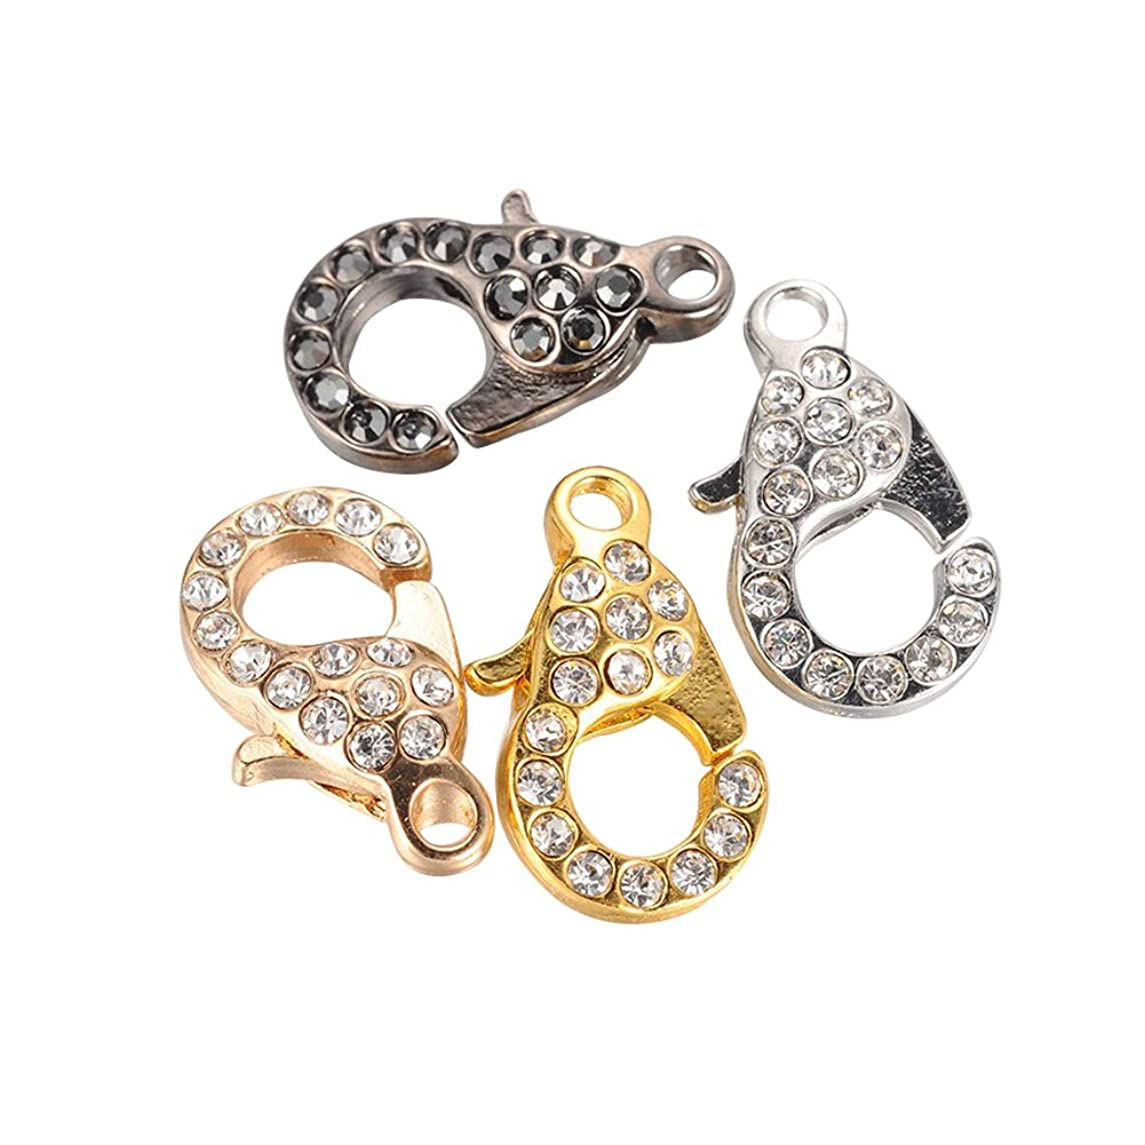 NBEADS 10 Pcs Random Mixed Color Lobster Clasps Rhinestone Lobster Claw Clasps for Jewelry Making Findings